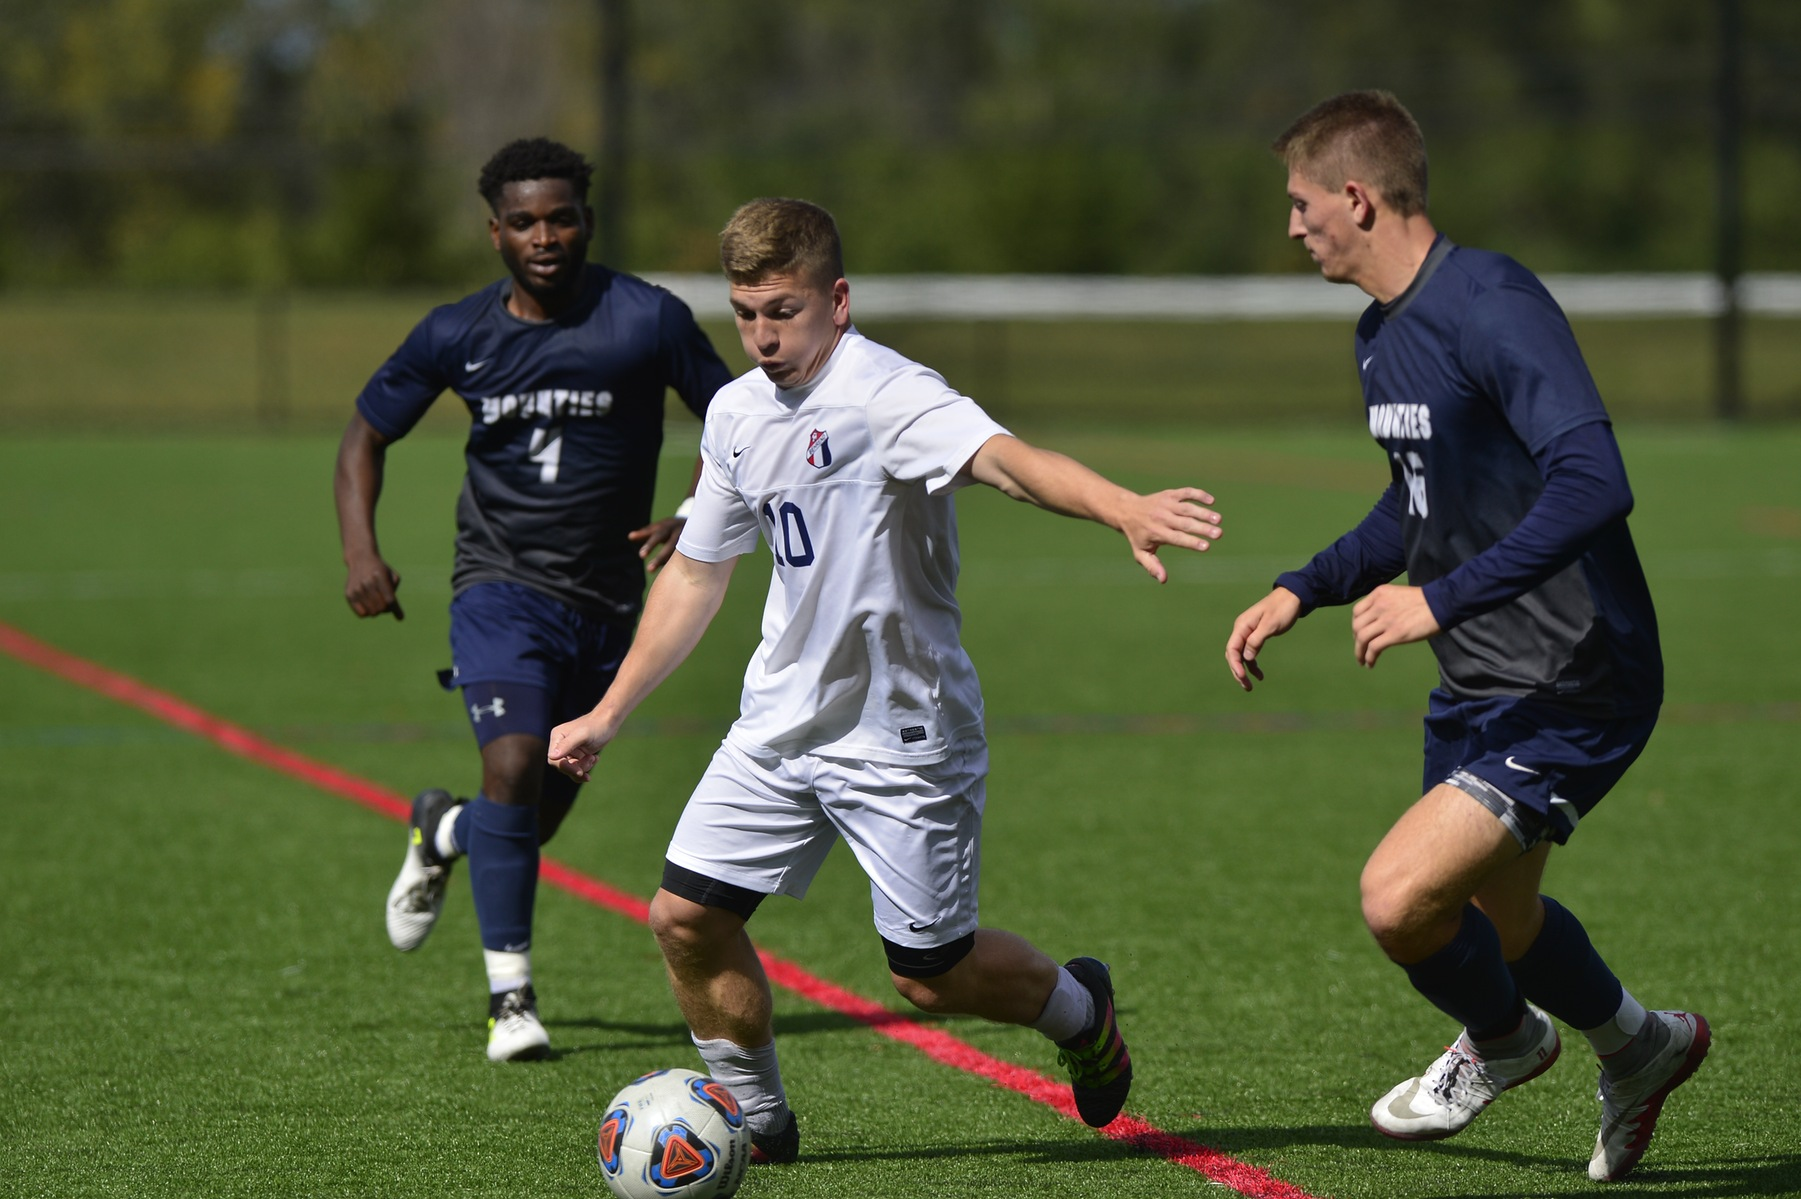 Men's Soccer Falls To Grove City in Final Seconds